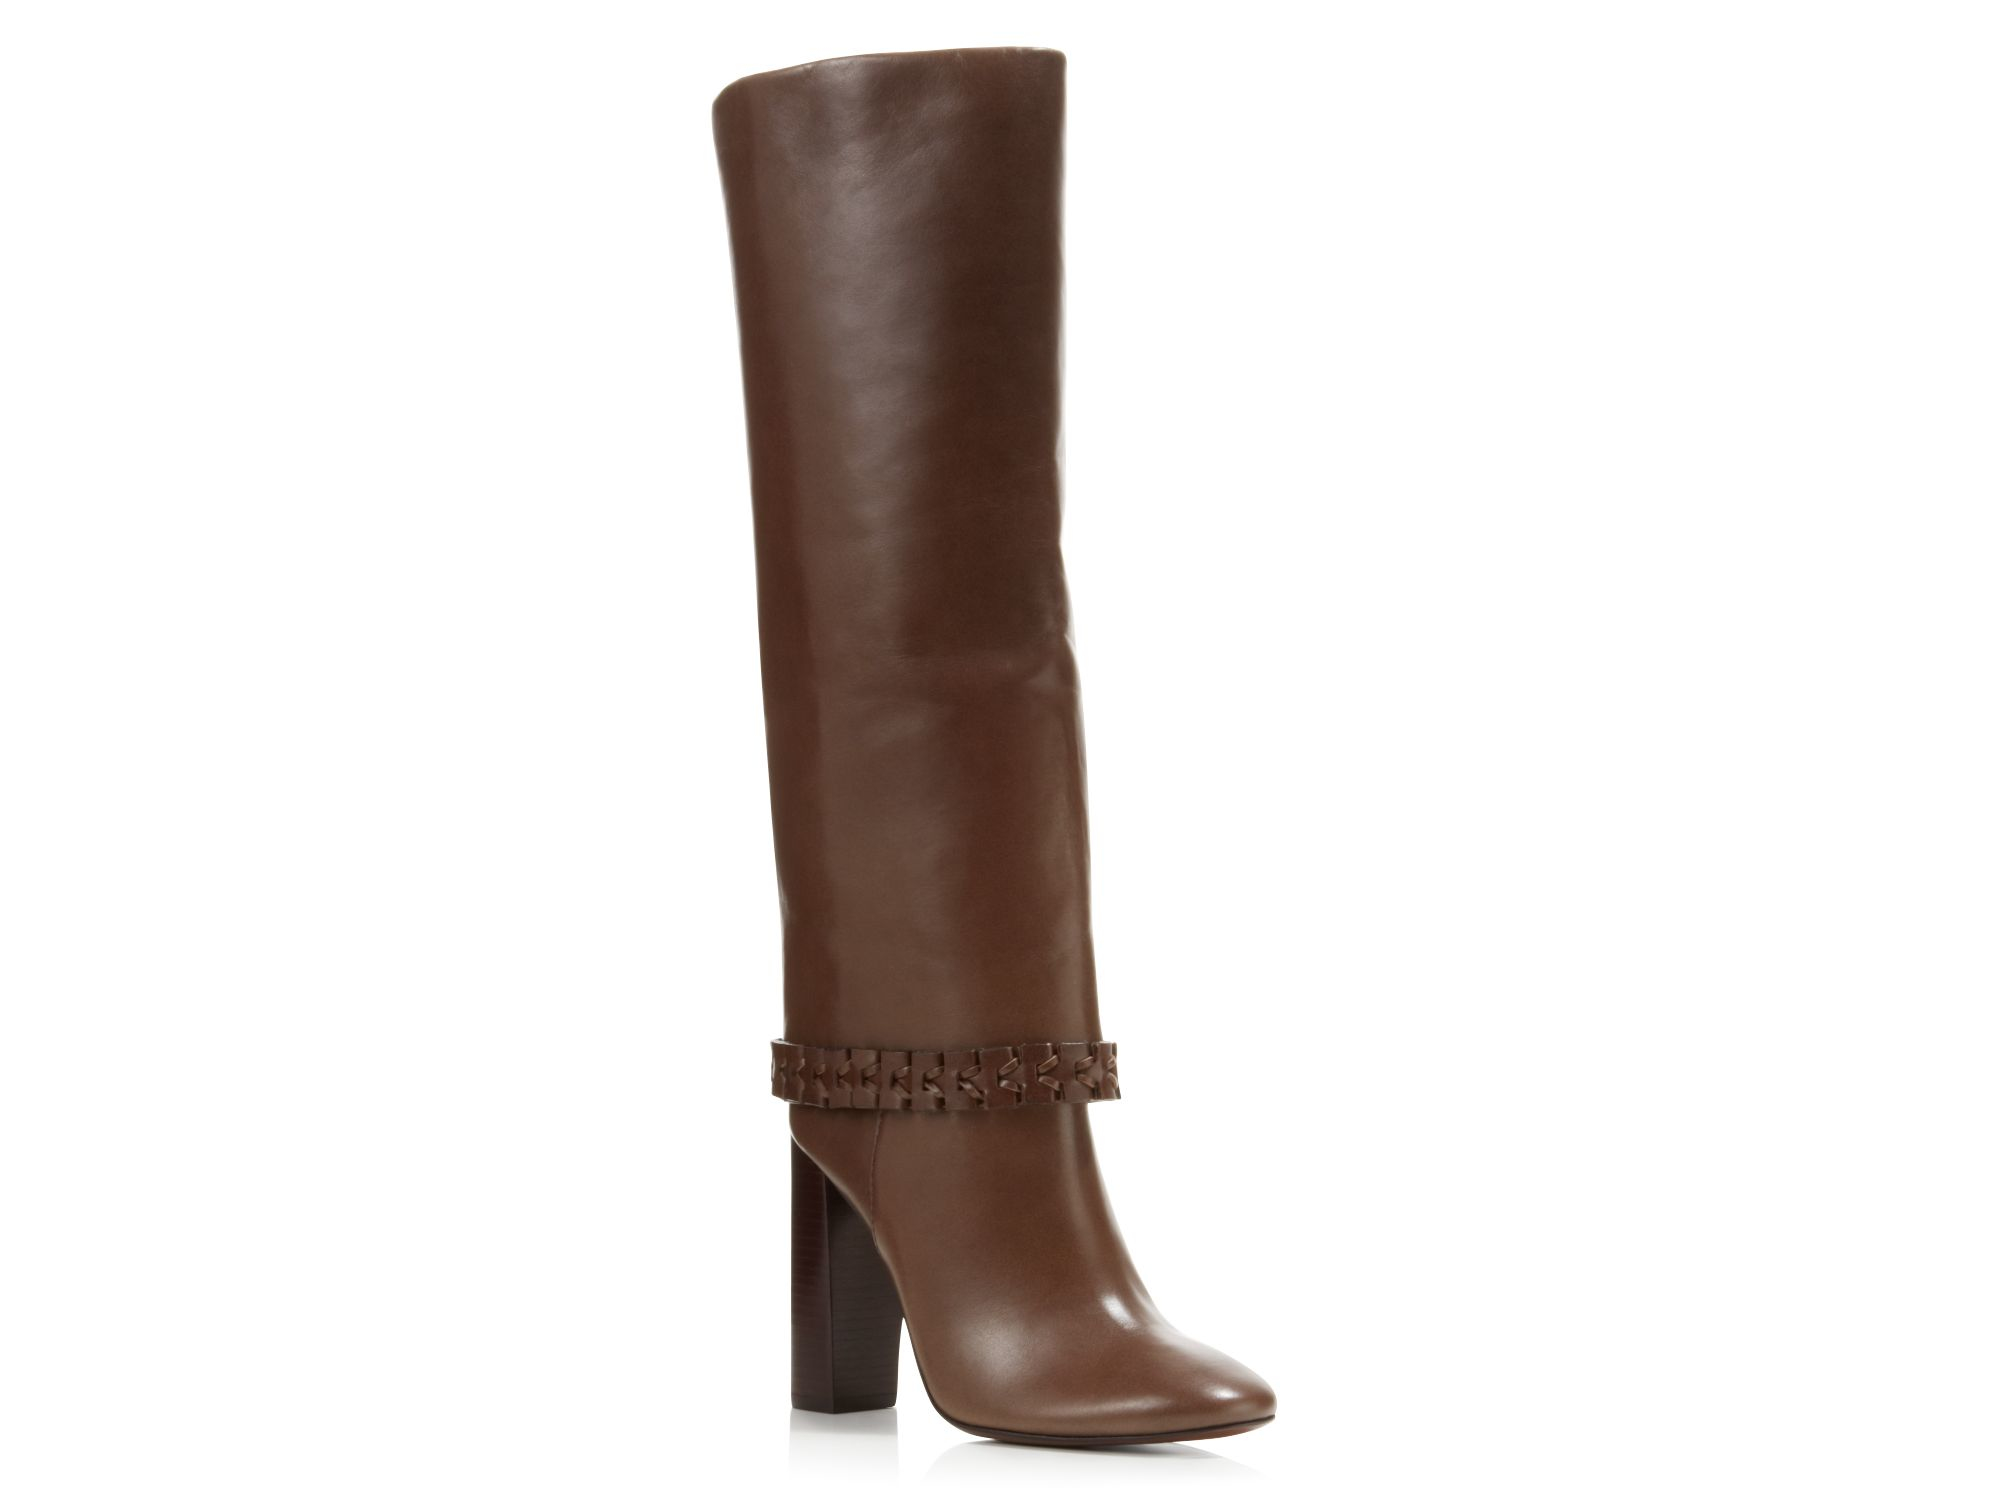 Tory burch Sarava High Heel Boots in Brown | Lyst